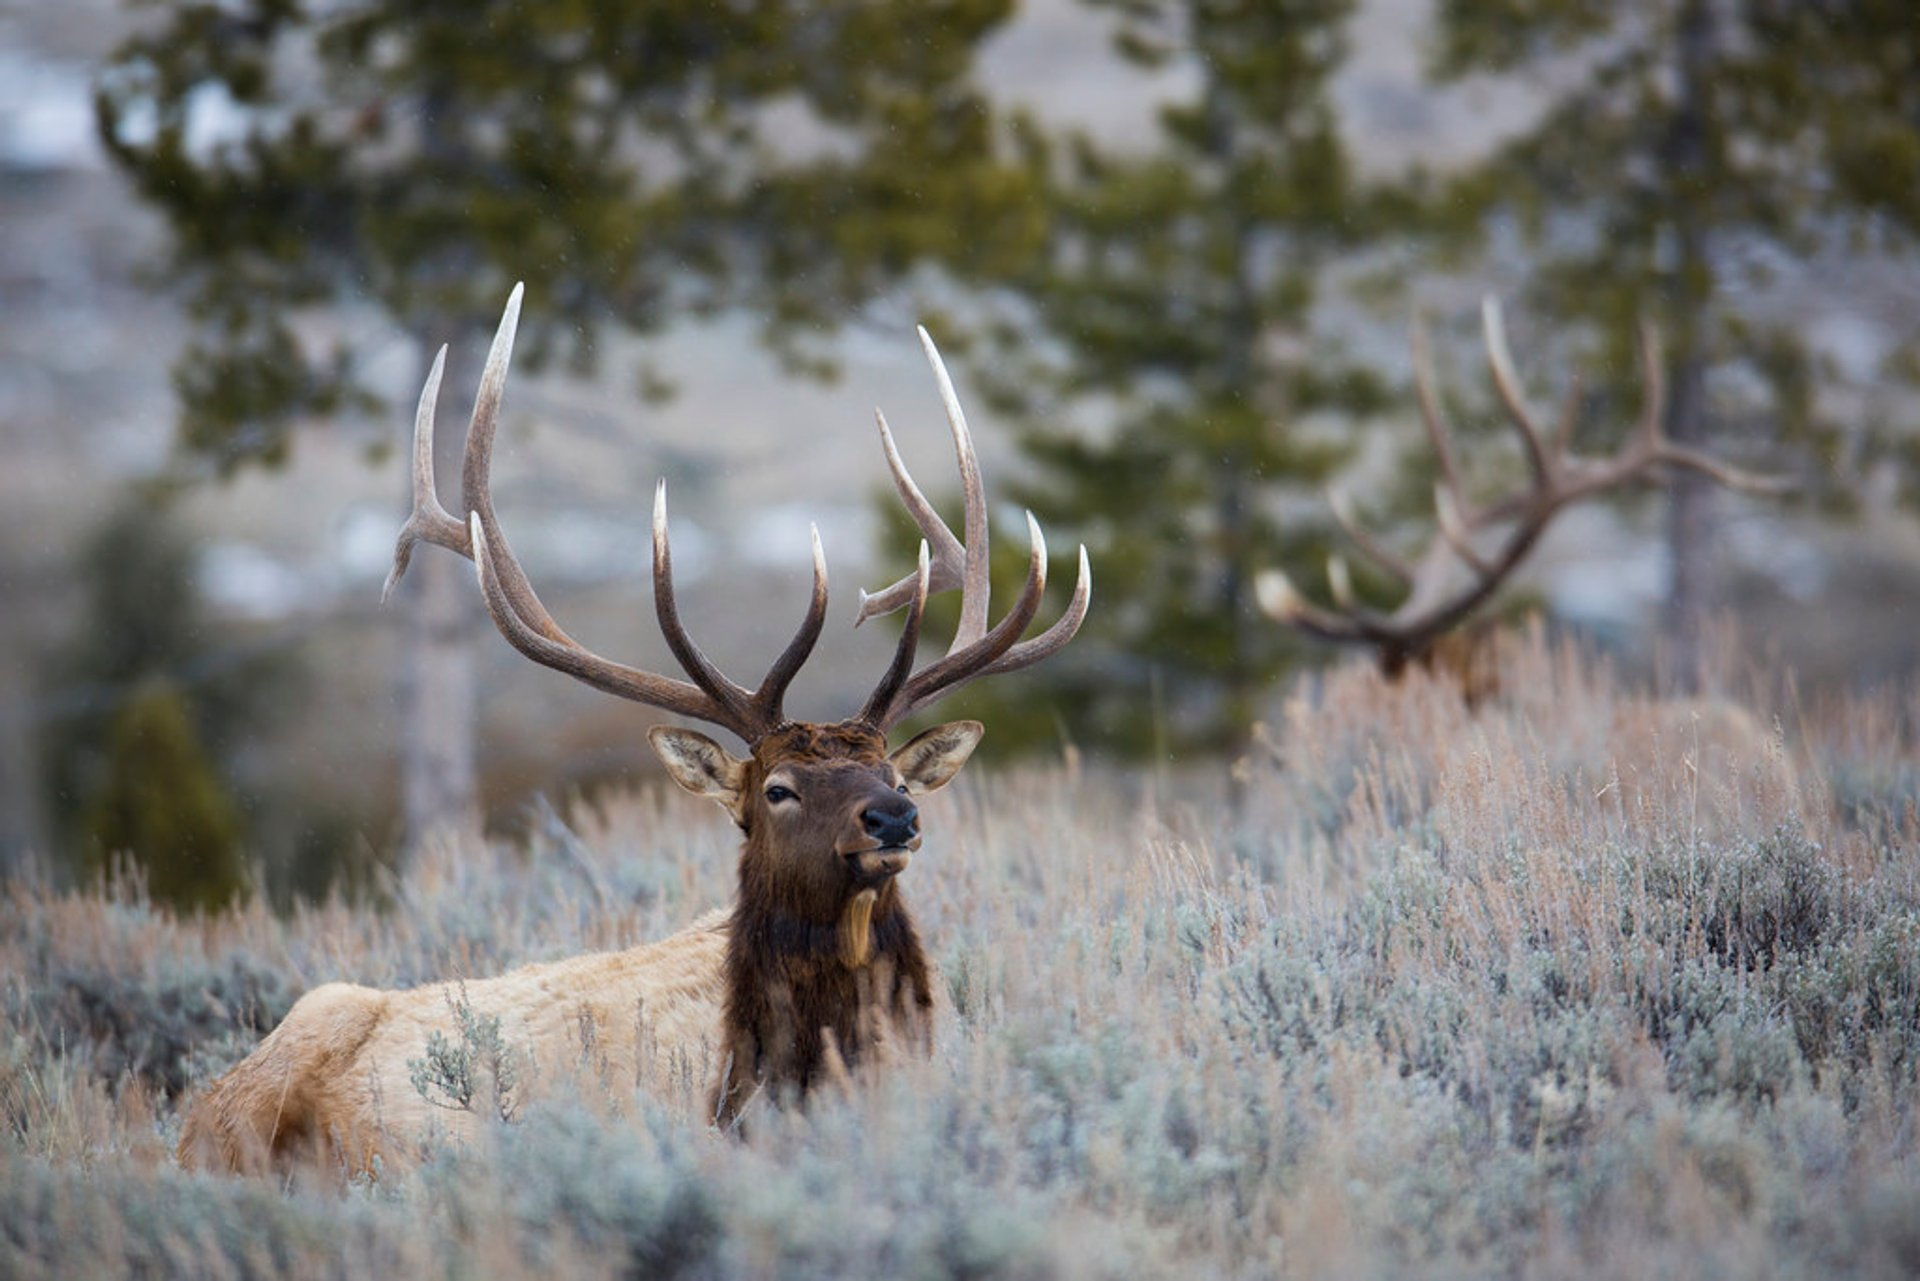 Elks in Yellowstone National Park 2019 - Best Time